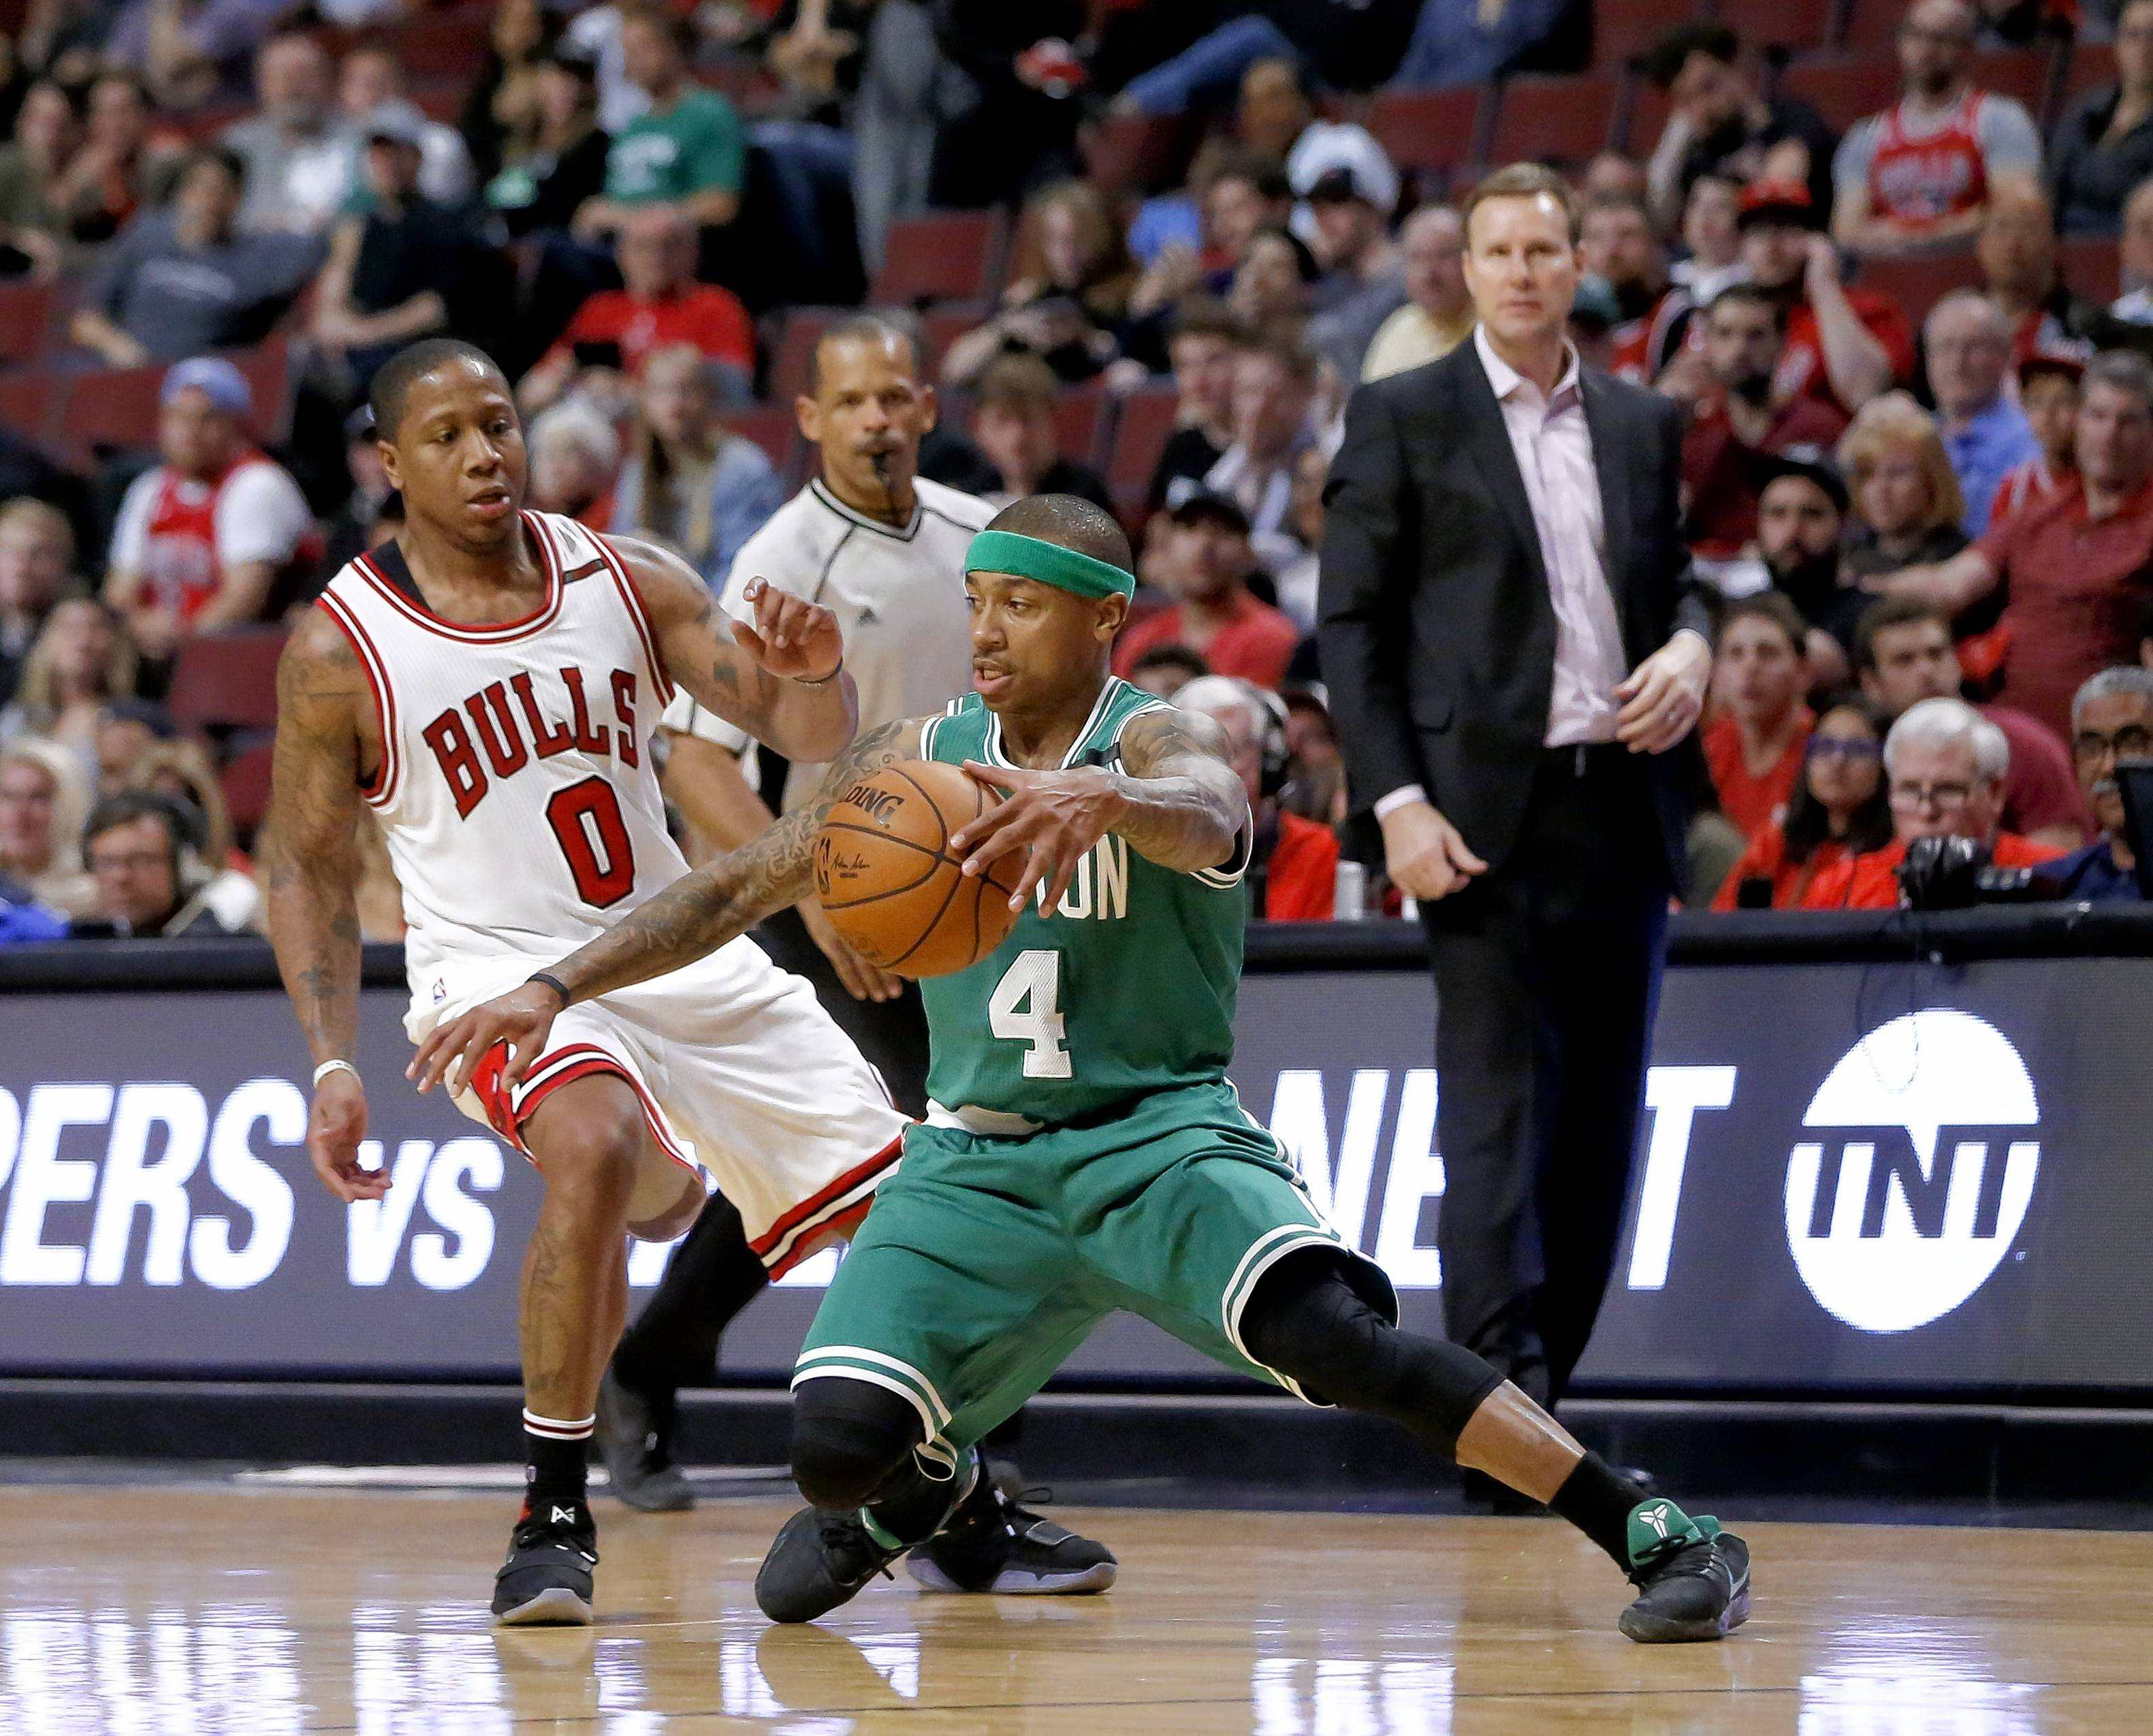 Boston Celtics' Isaiah Thomas (4) controls the ball from Chicago Bulls' Isaiah Canaan (0) as head coach Fred Hoiberg watches during the second half in Game 4 of an NBA basketball first-round playoff series in Chicago, Sunday.